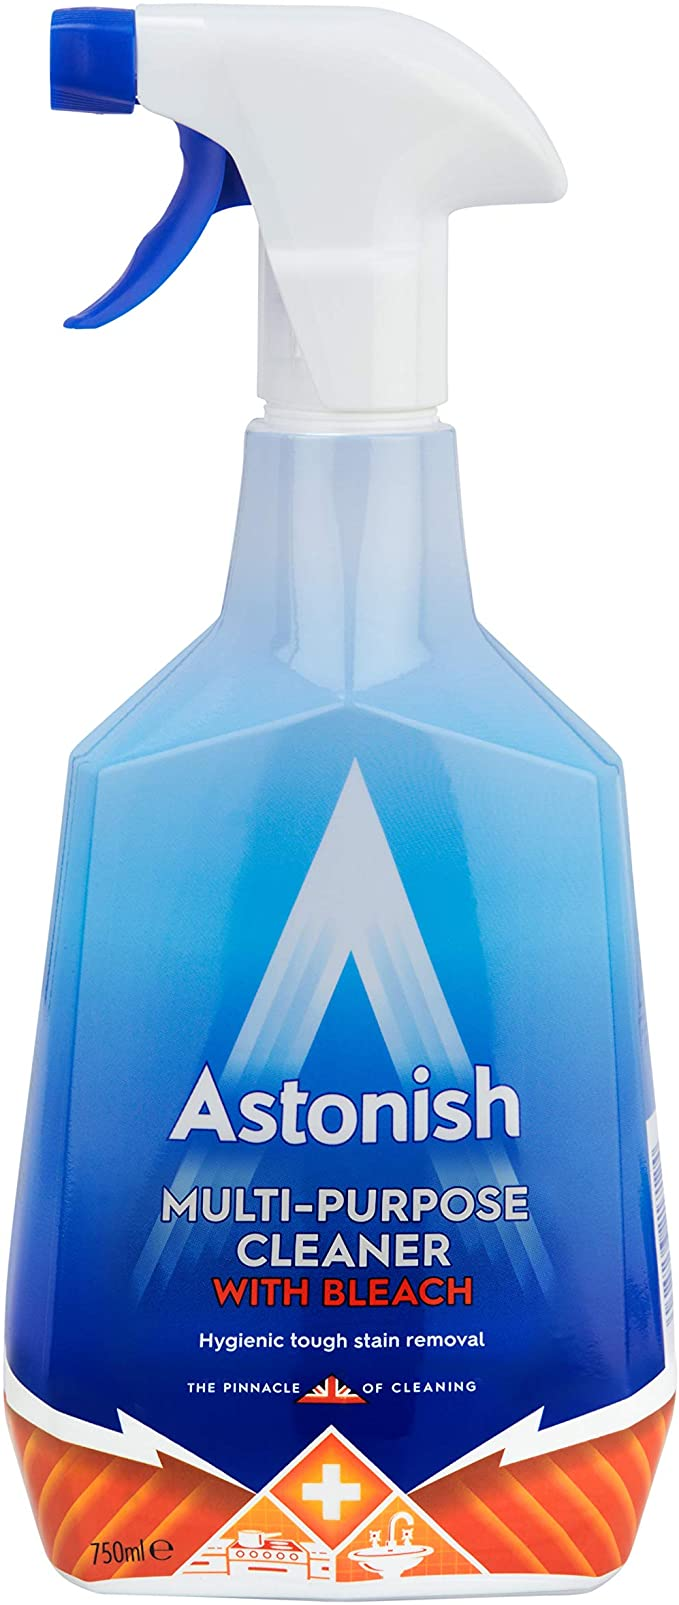 Astonish Multi Purpose Cleaner With Bleach Trigger Spray 750ml